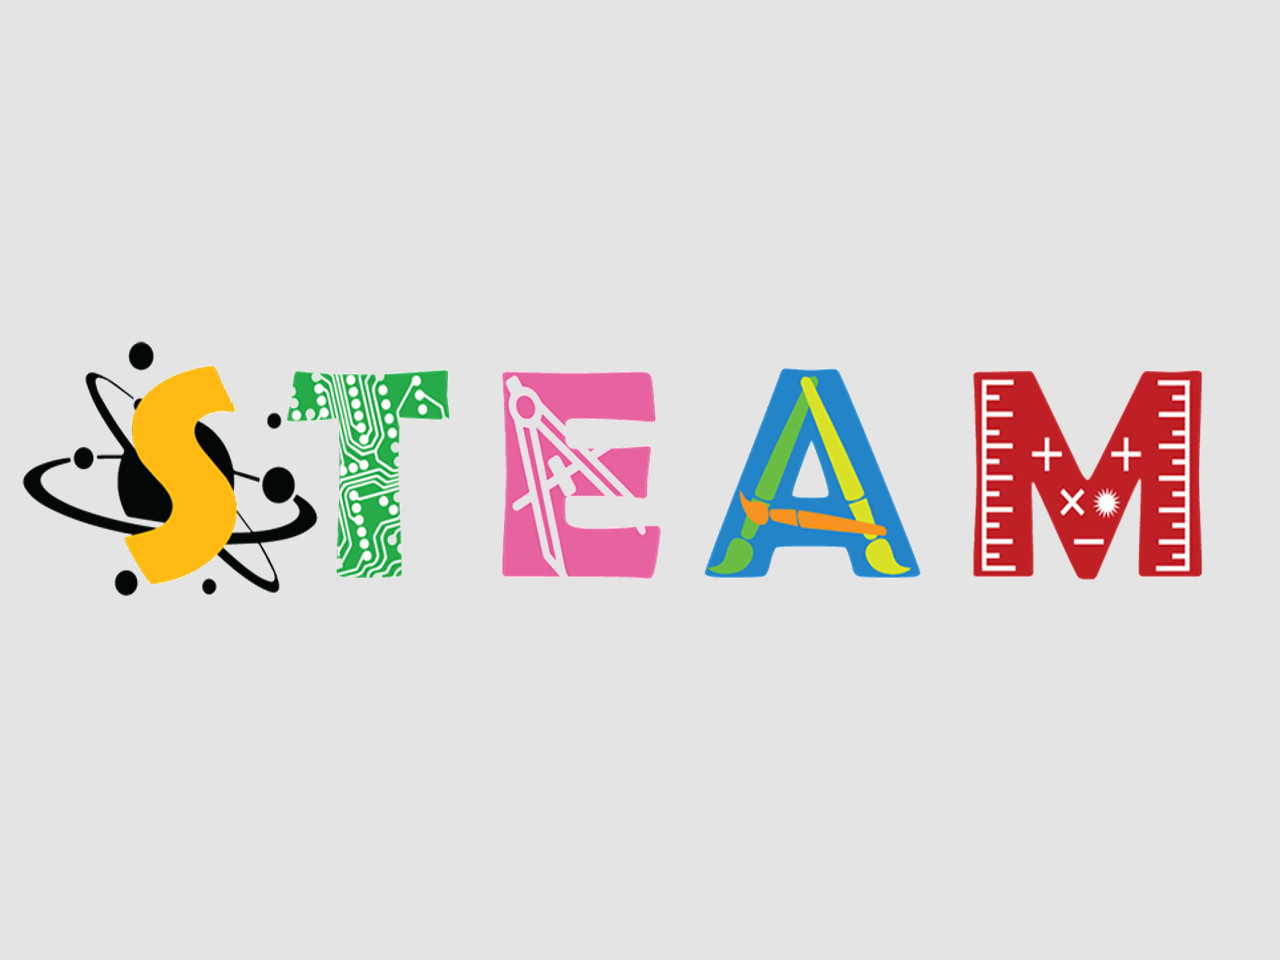 The importance of A in STEAM